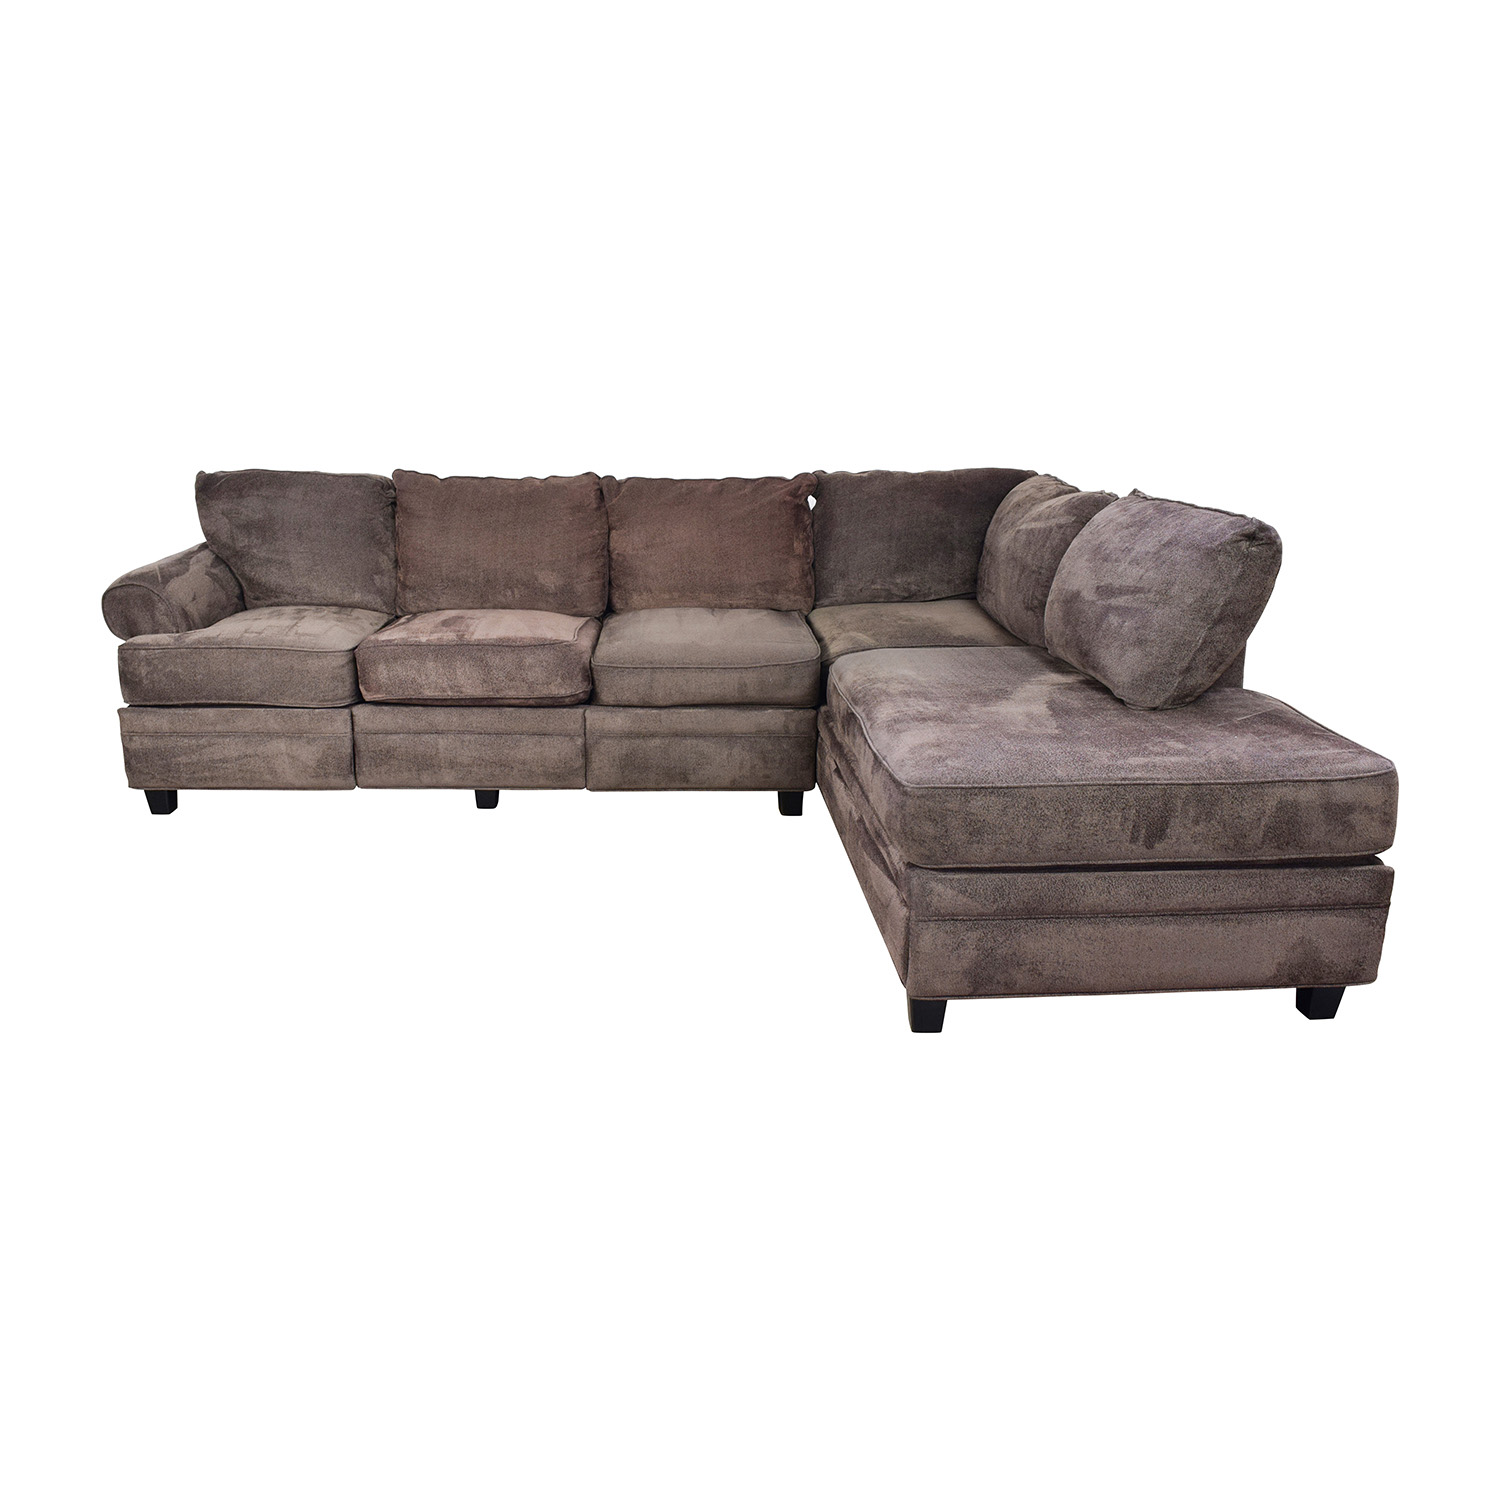 Bobs Furniture Bobs Furniture Brown Sectional with Storage Sectionals